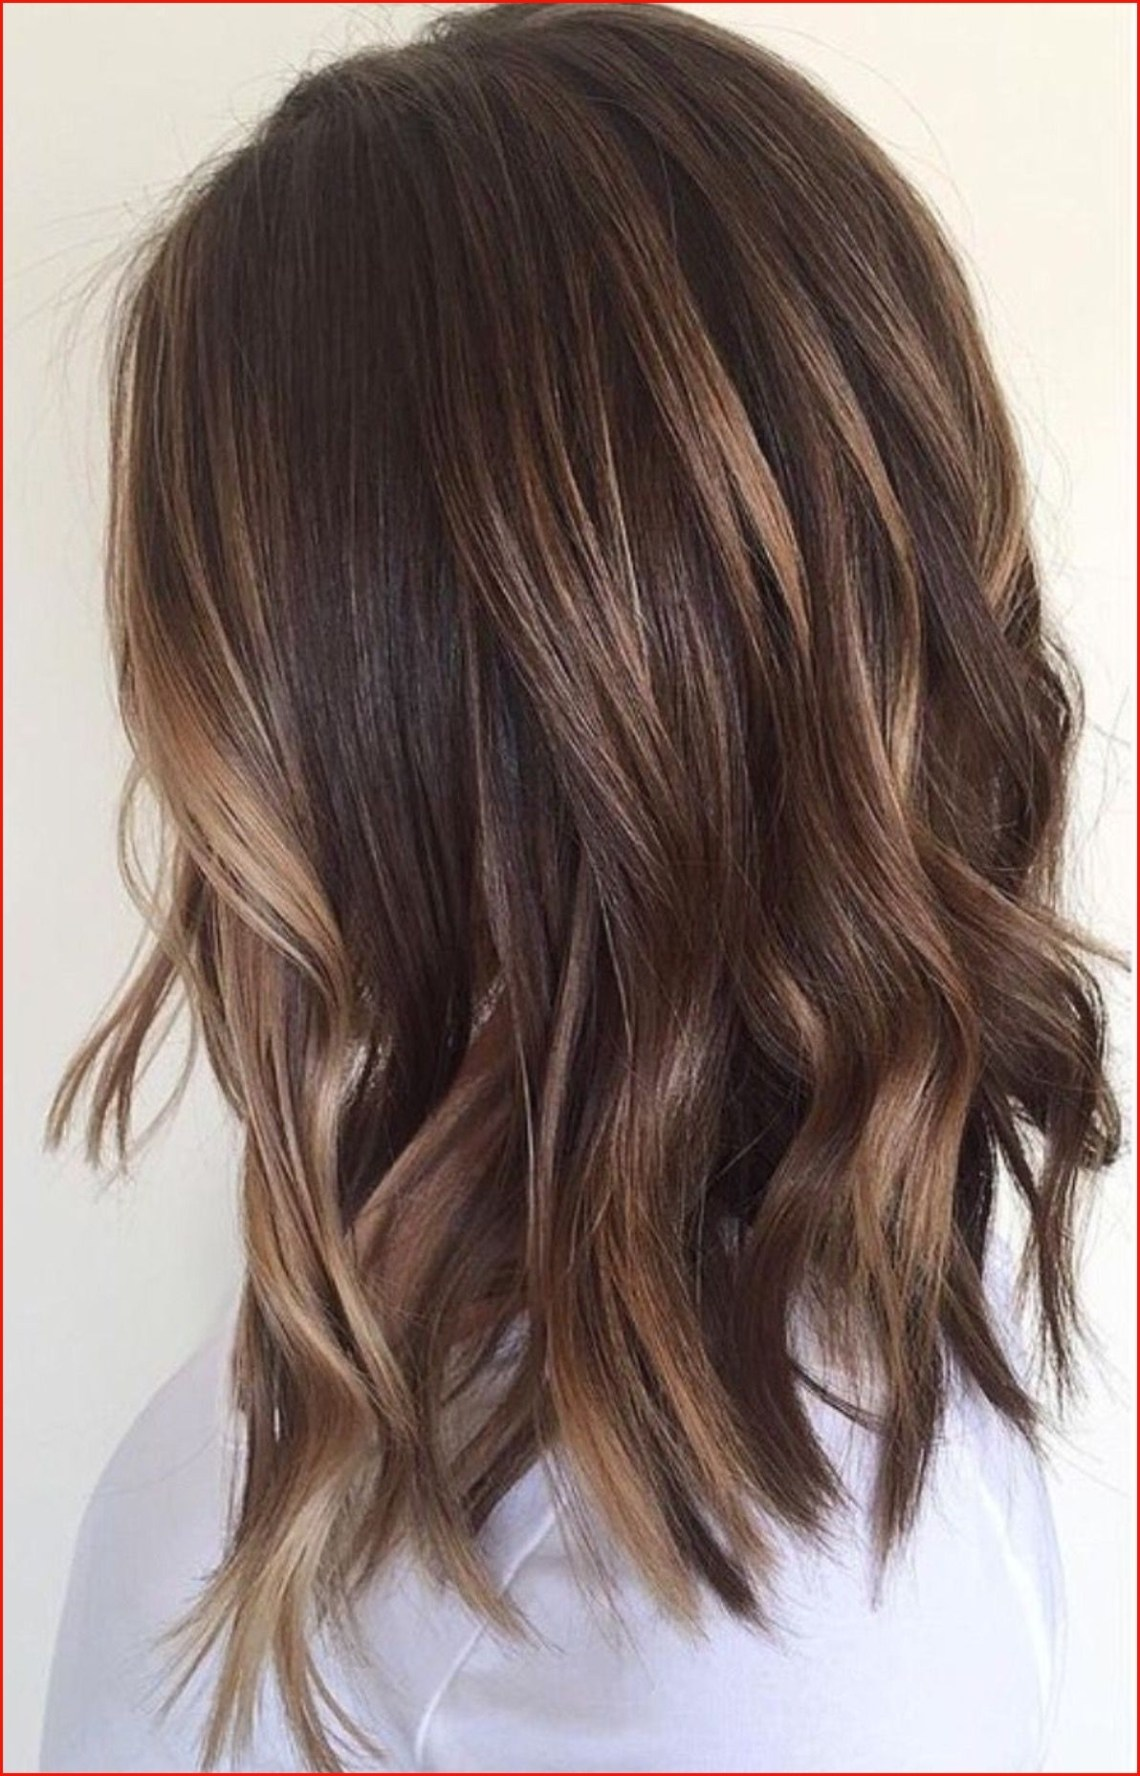 Awesome Brunette Medium Length Hairstyles Picture Of Medium Medium Brunette Hairstyles